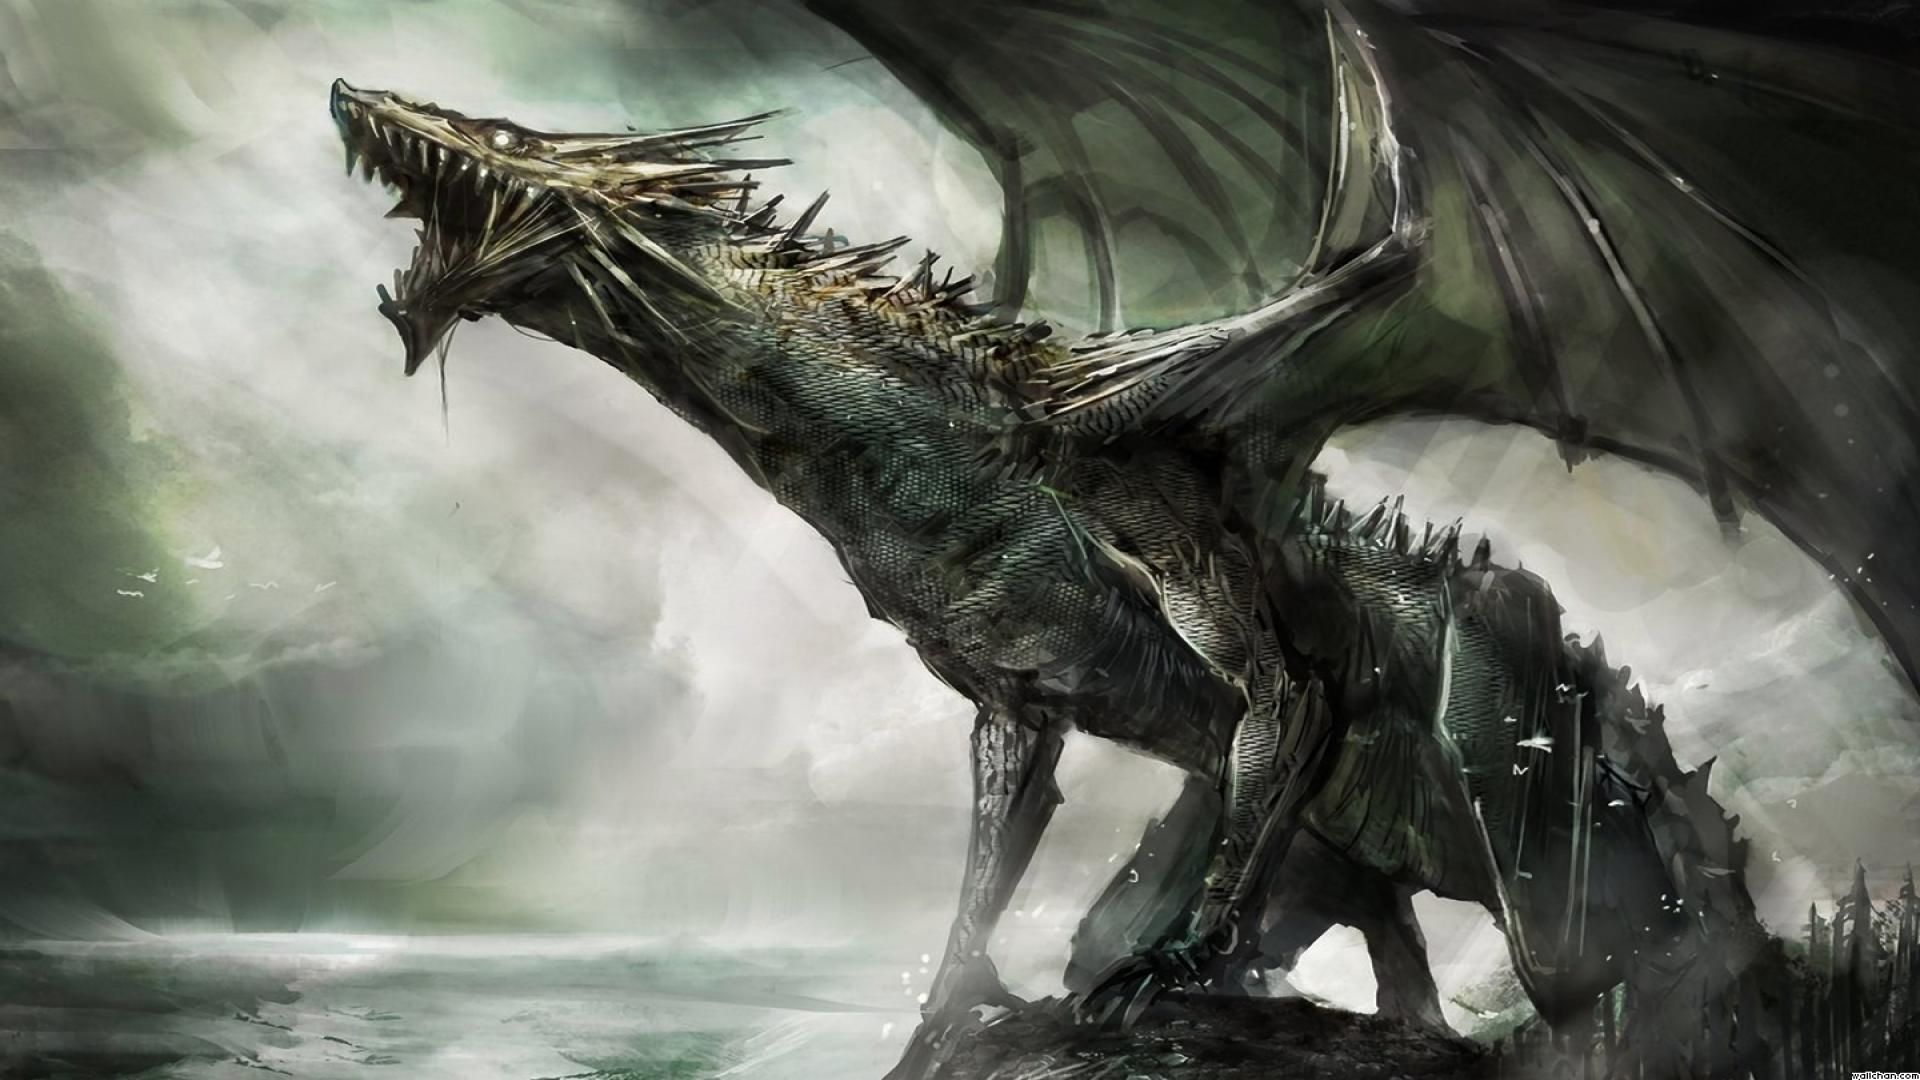 Dragon 3d Picture Free Desktop Hd Wallpaper Dragon Illustration Dragon Images Dragon Pictures